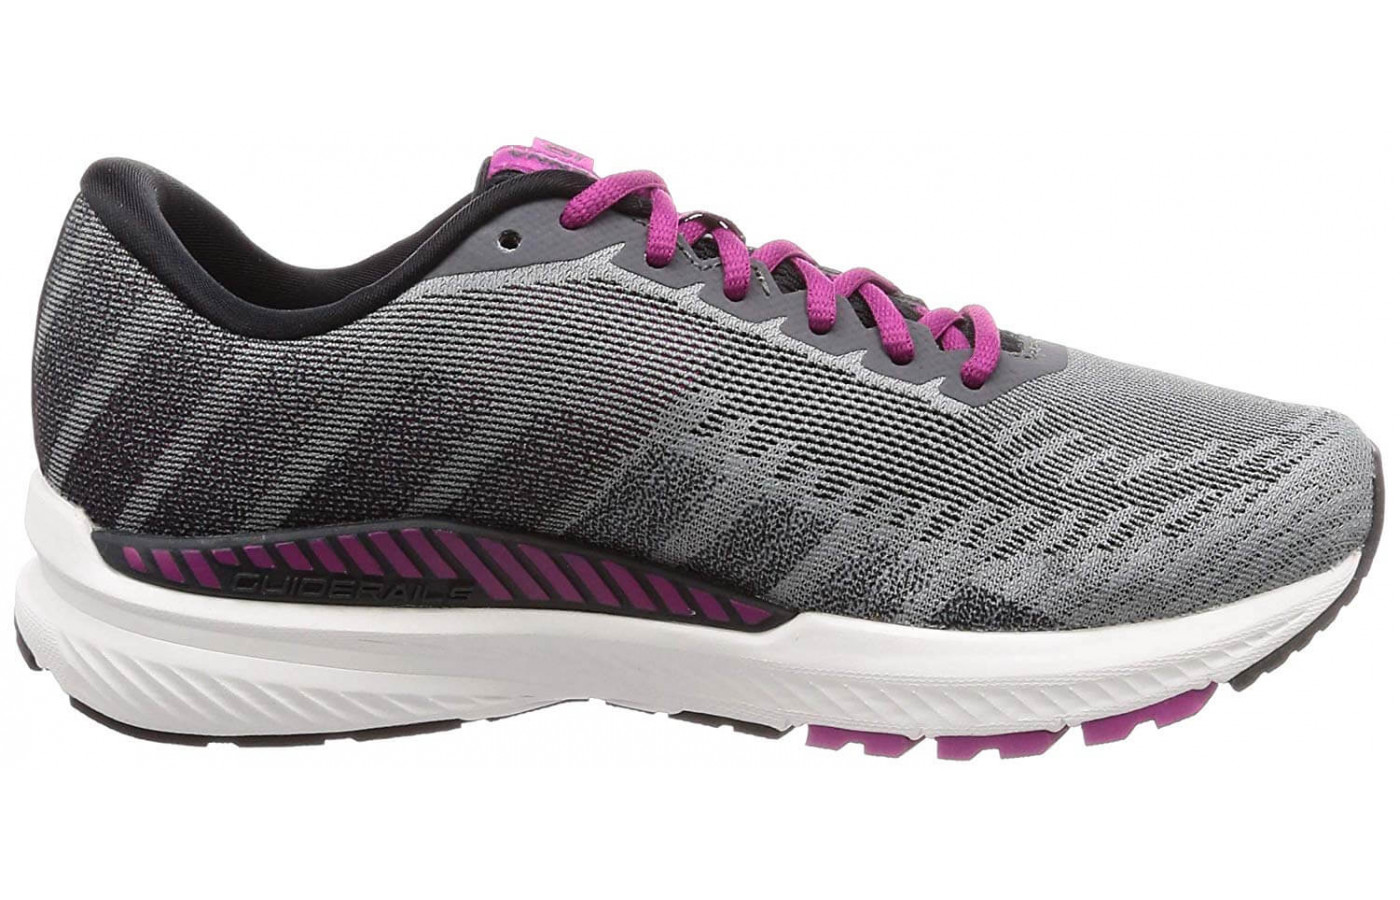 The Ravenna 10's BioMoGo DNA midsole ensures responsive cushioning.